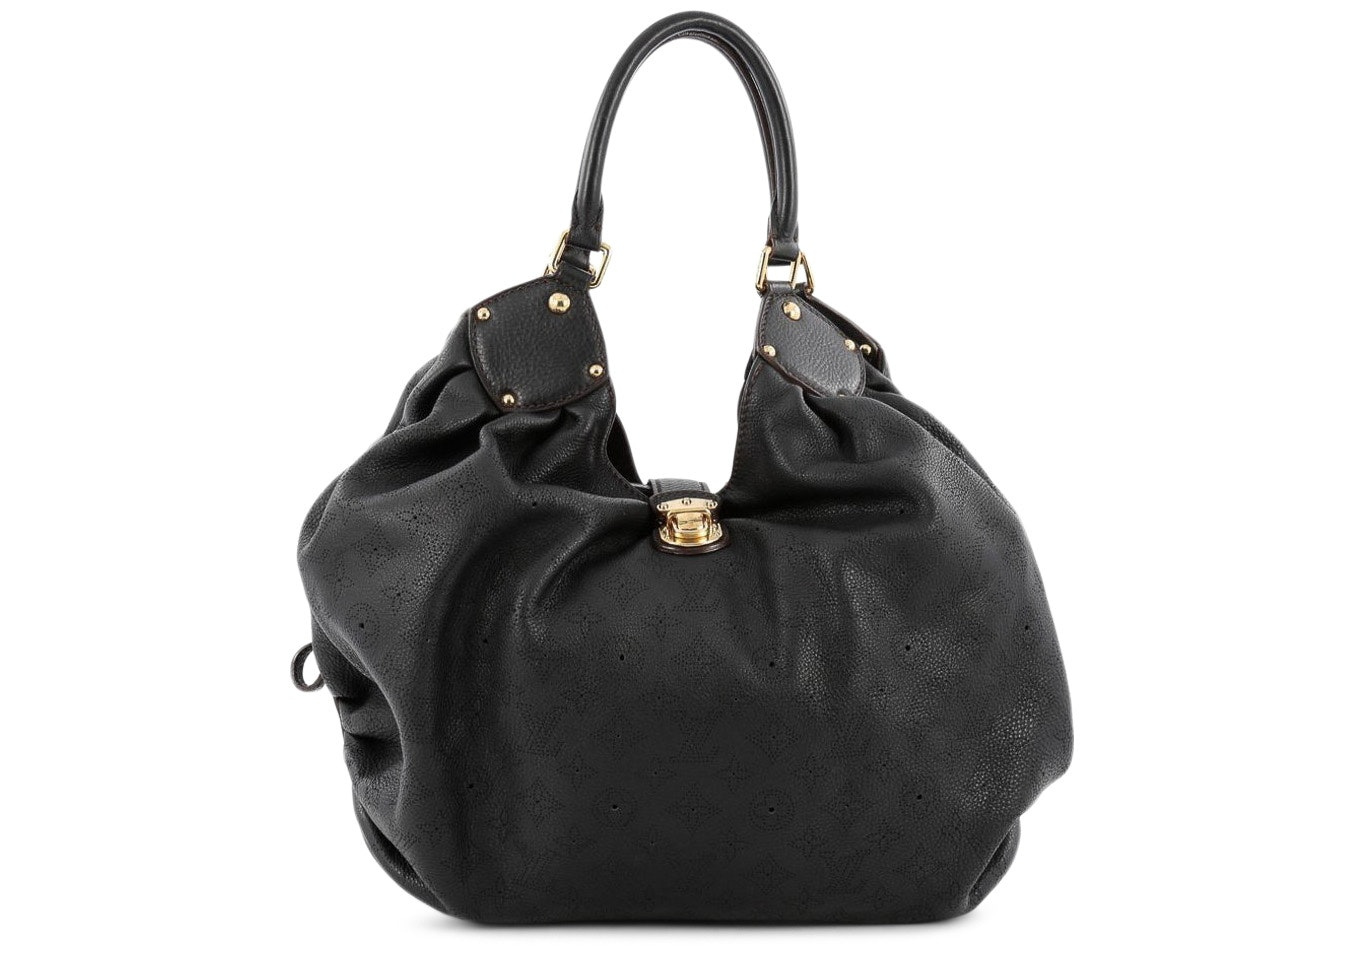 Louis Vuitton L Hobo Monogram Mahina Black